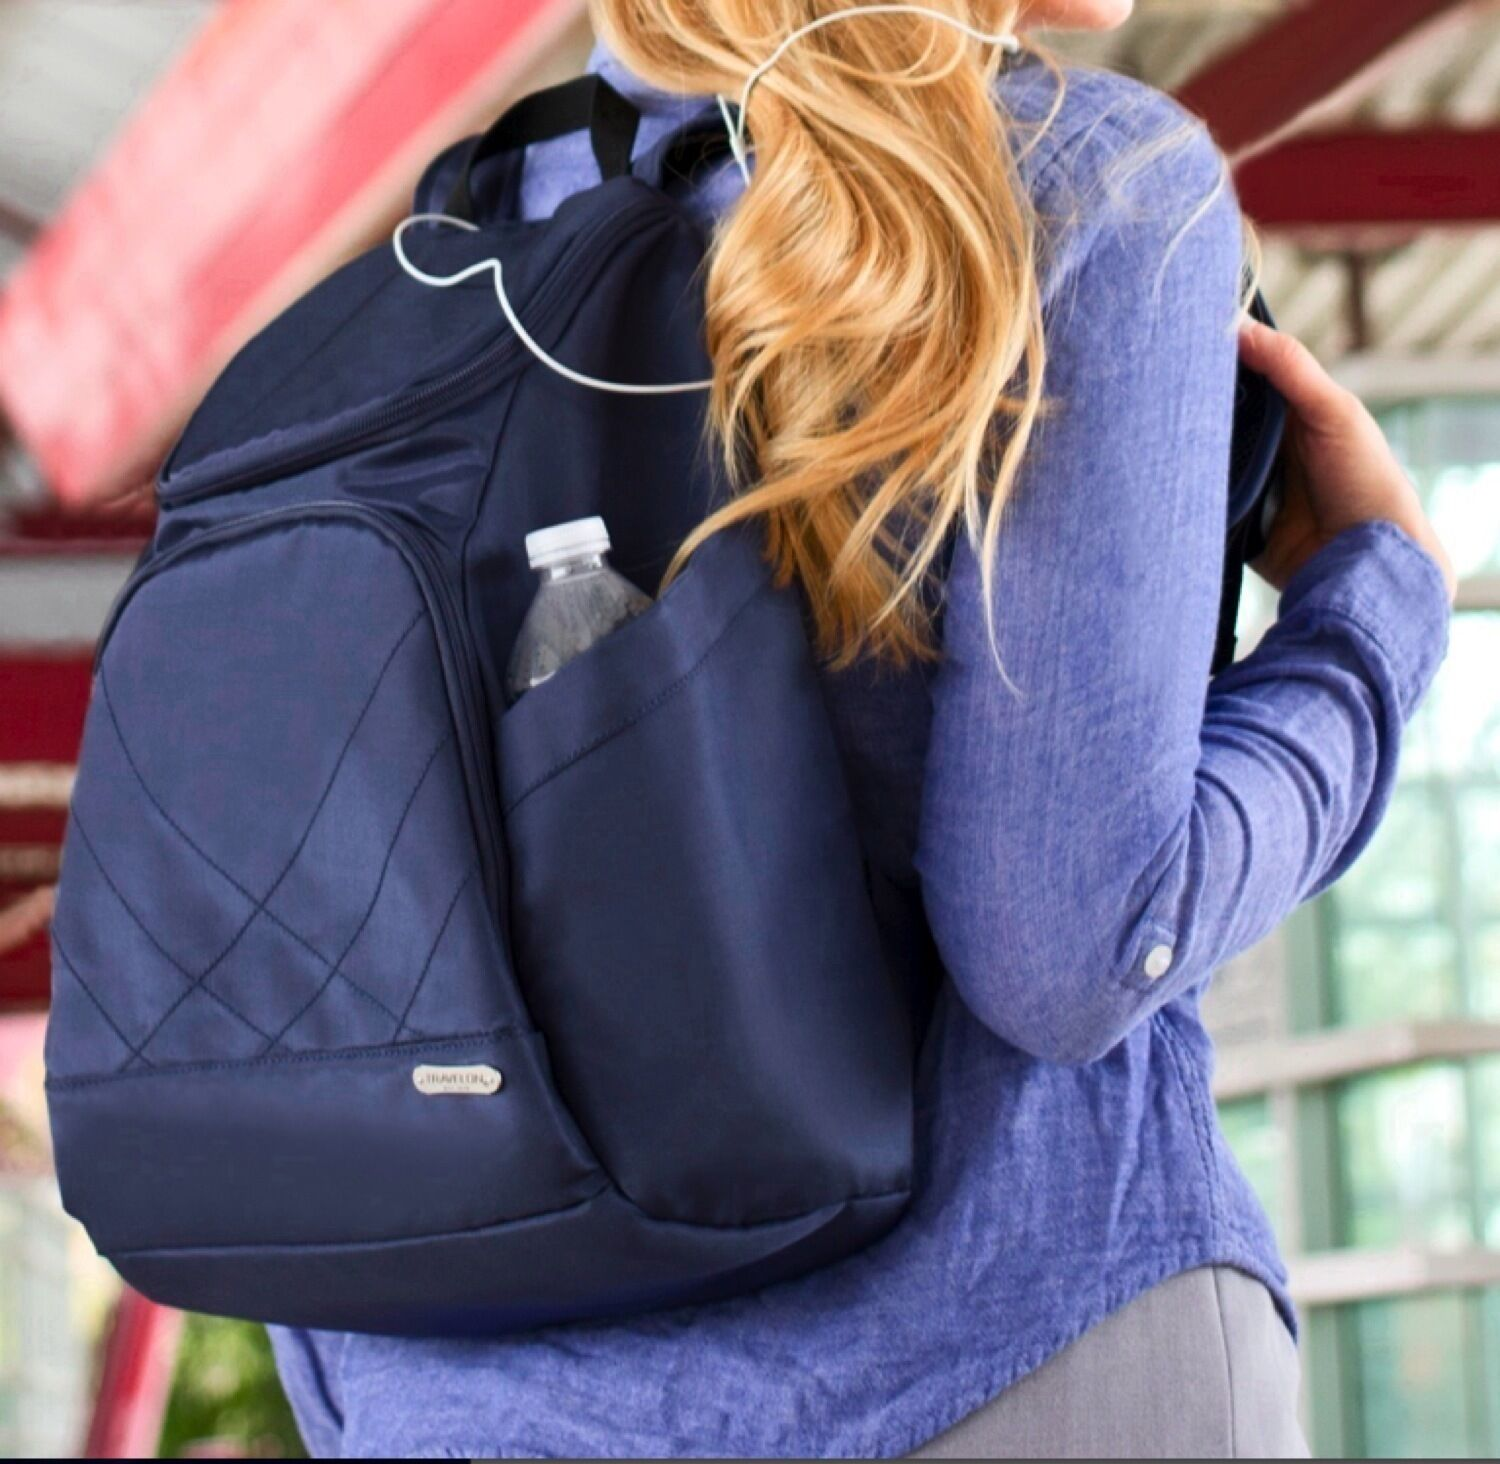 TRAVELON ANTI Swiping RFID SAFE CLASSIC TRAVEL BACKPACK